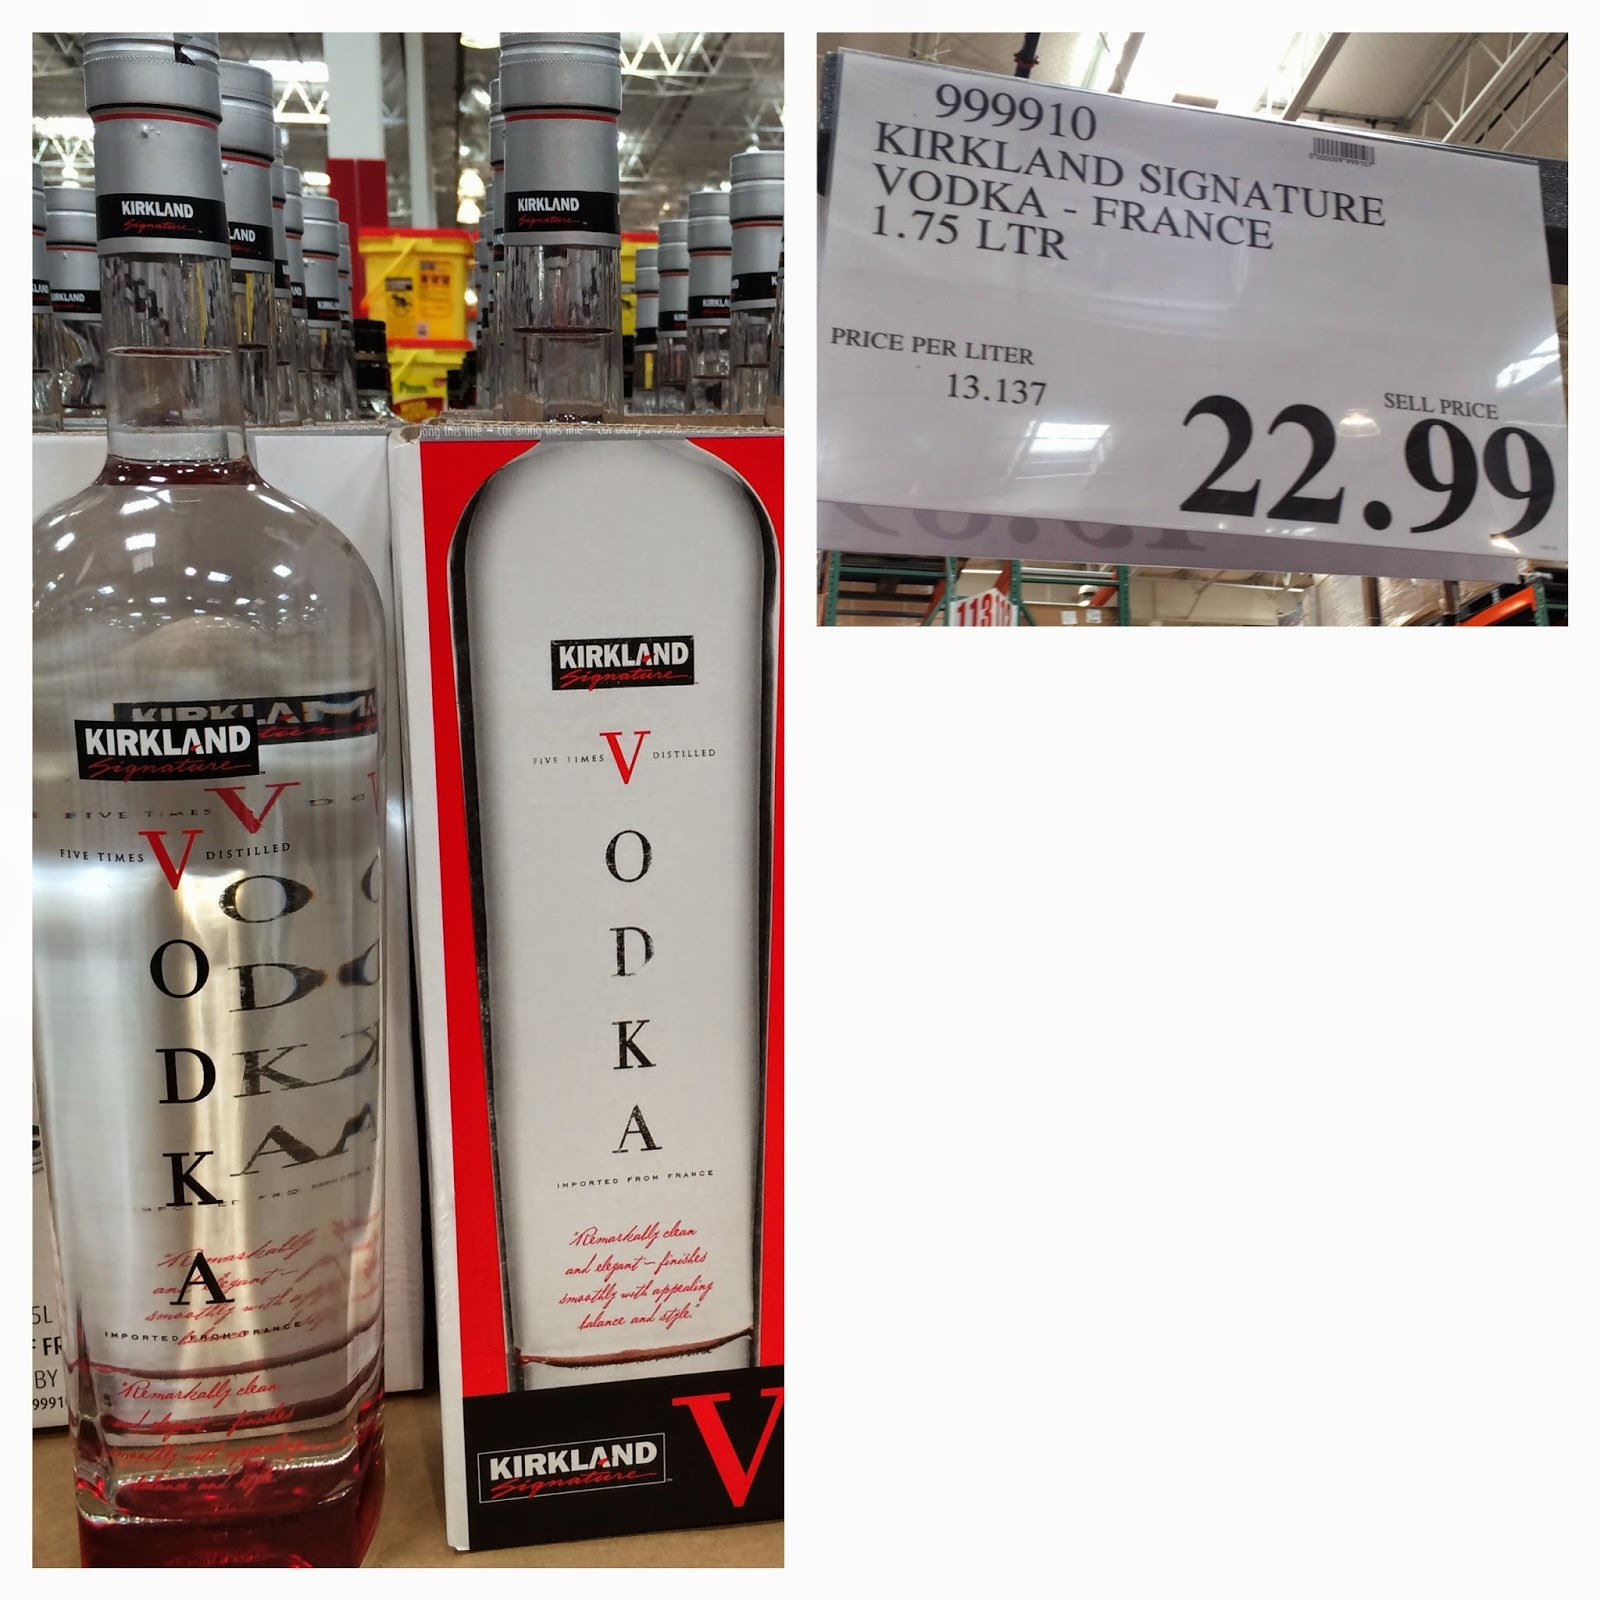 """""""5 Secrets to Buying Alcohol at Costco That THEY Don't Want You to Know About """" but that would have sounded way too much like an infomercial. And, of course, for maximum clickbait exposure, we should have said something like """"#3 will blow your mind!"""" But what we really want to do is make this as informative as gosh darn possible."""